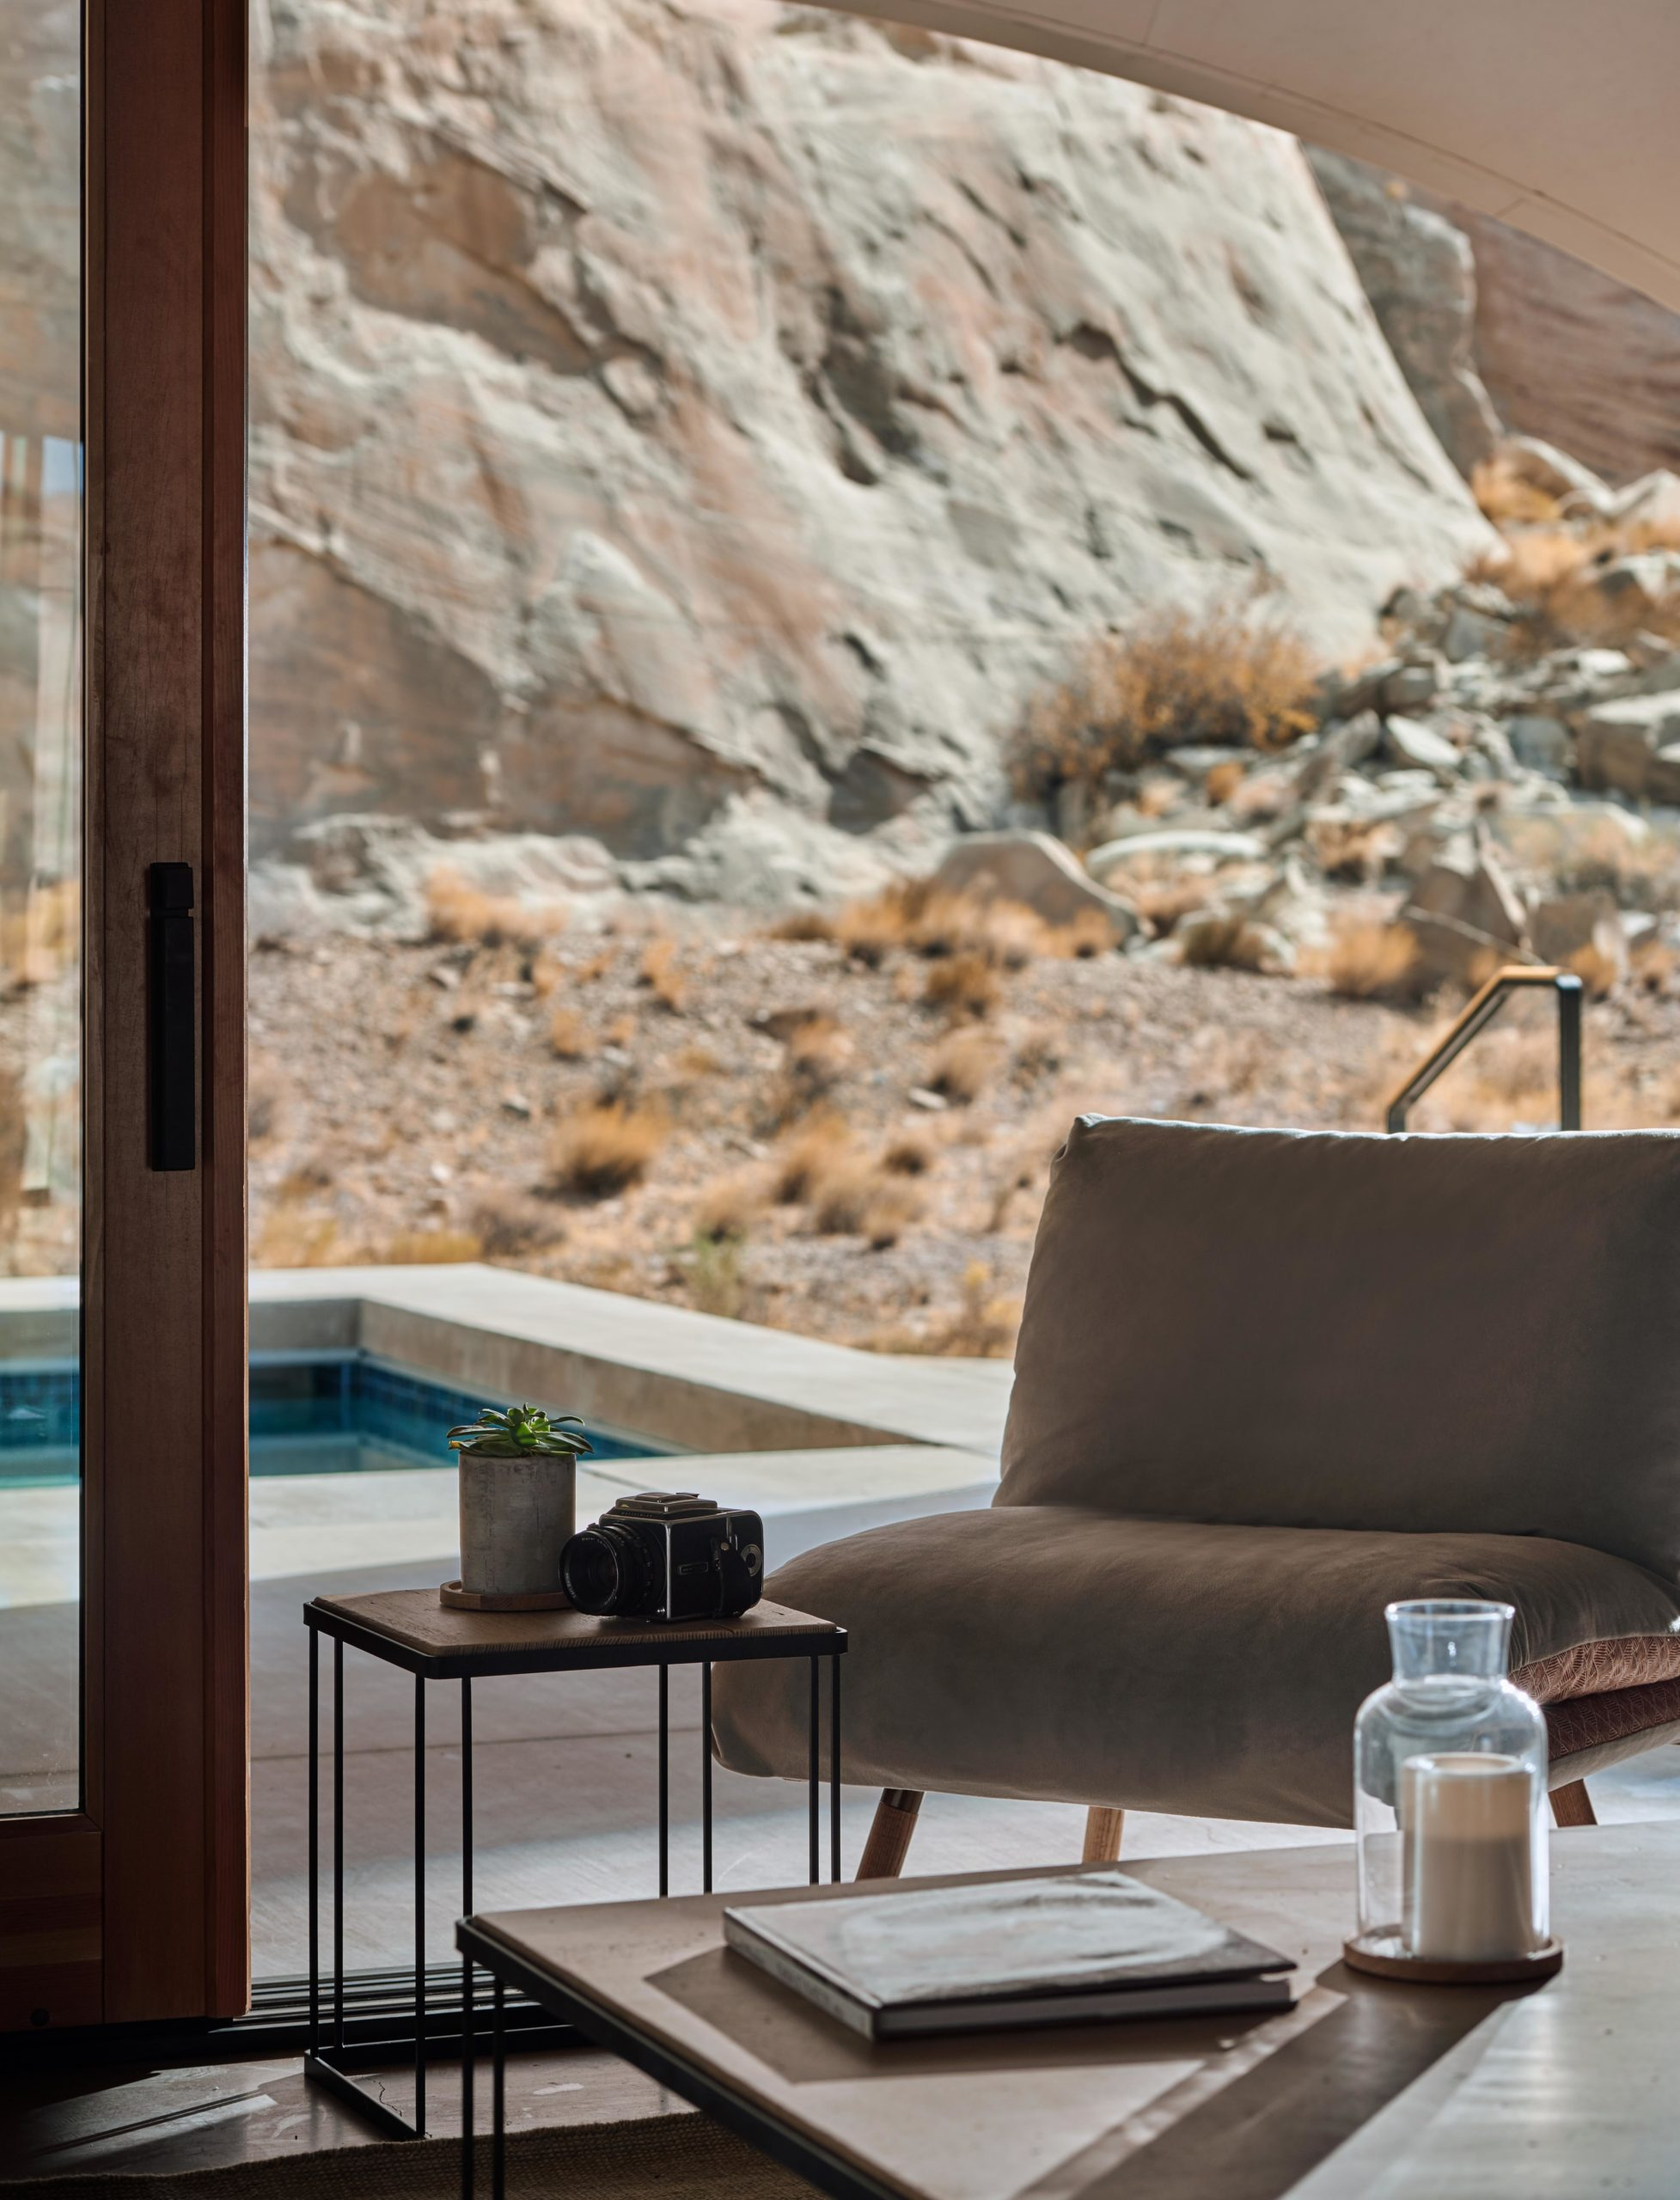 Best Luxury Hotels for Social Distancing in the United States